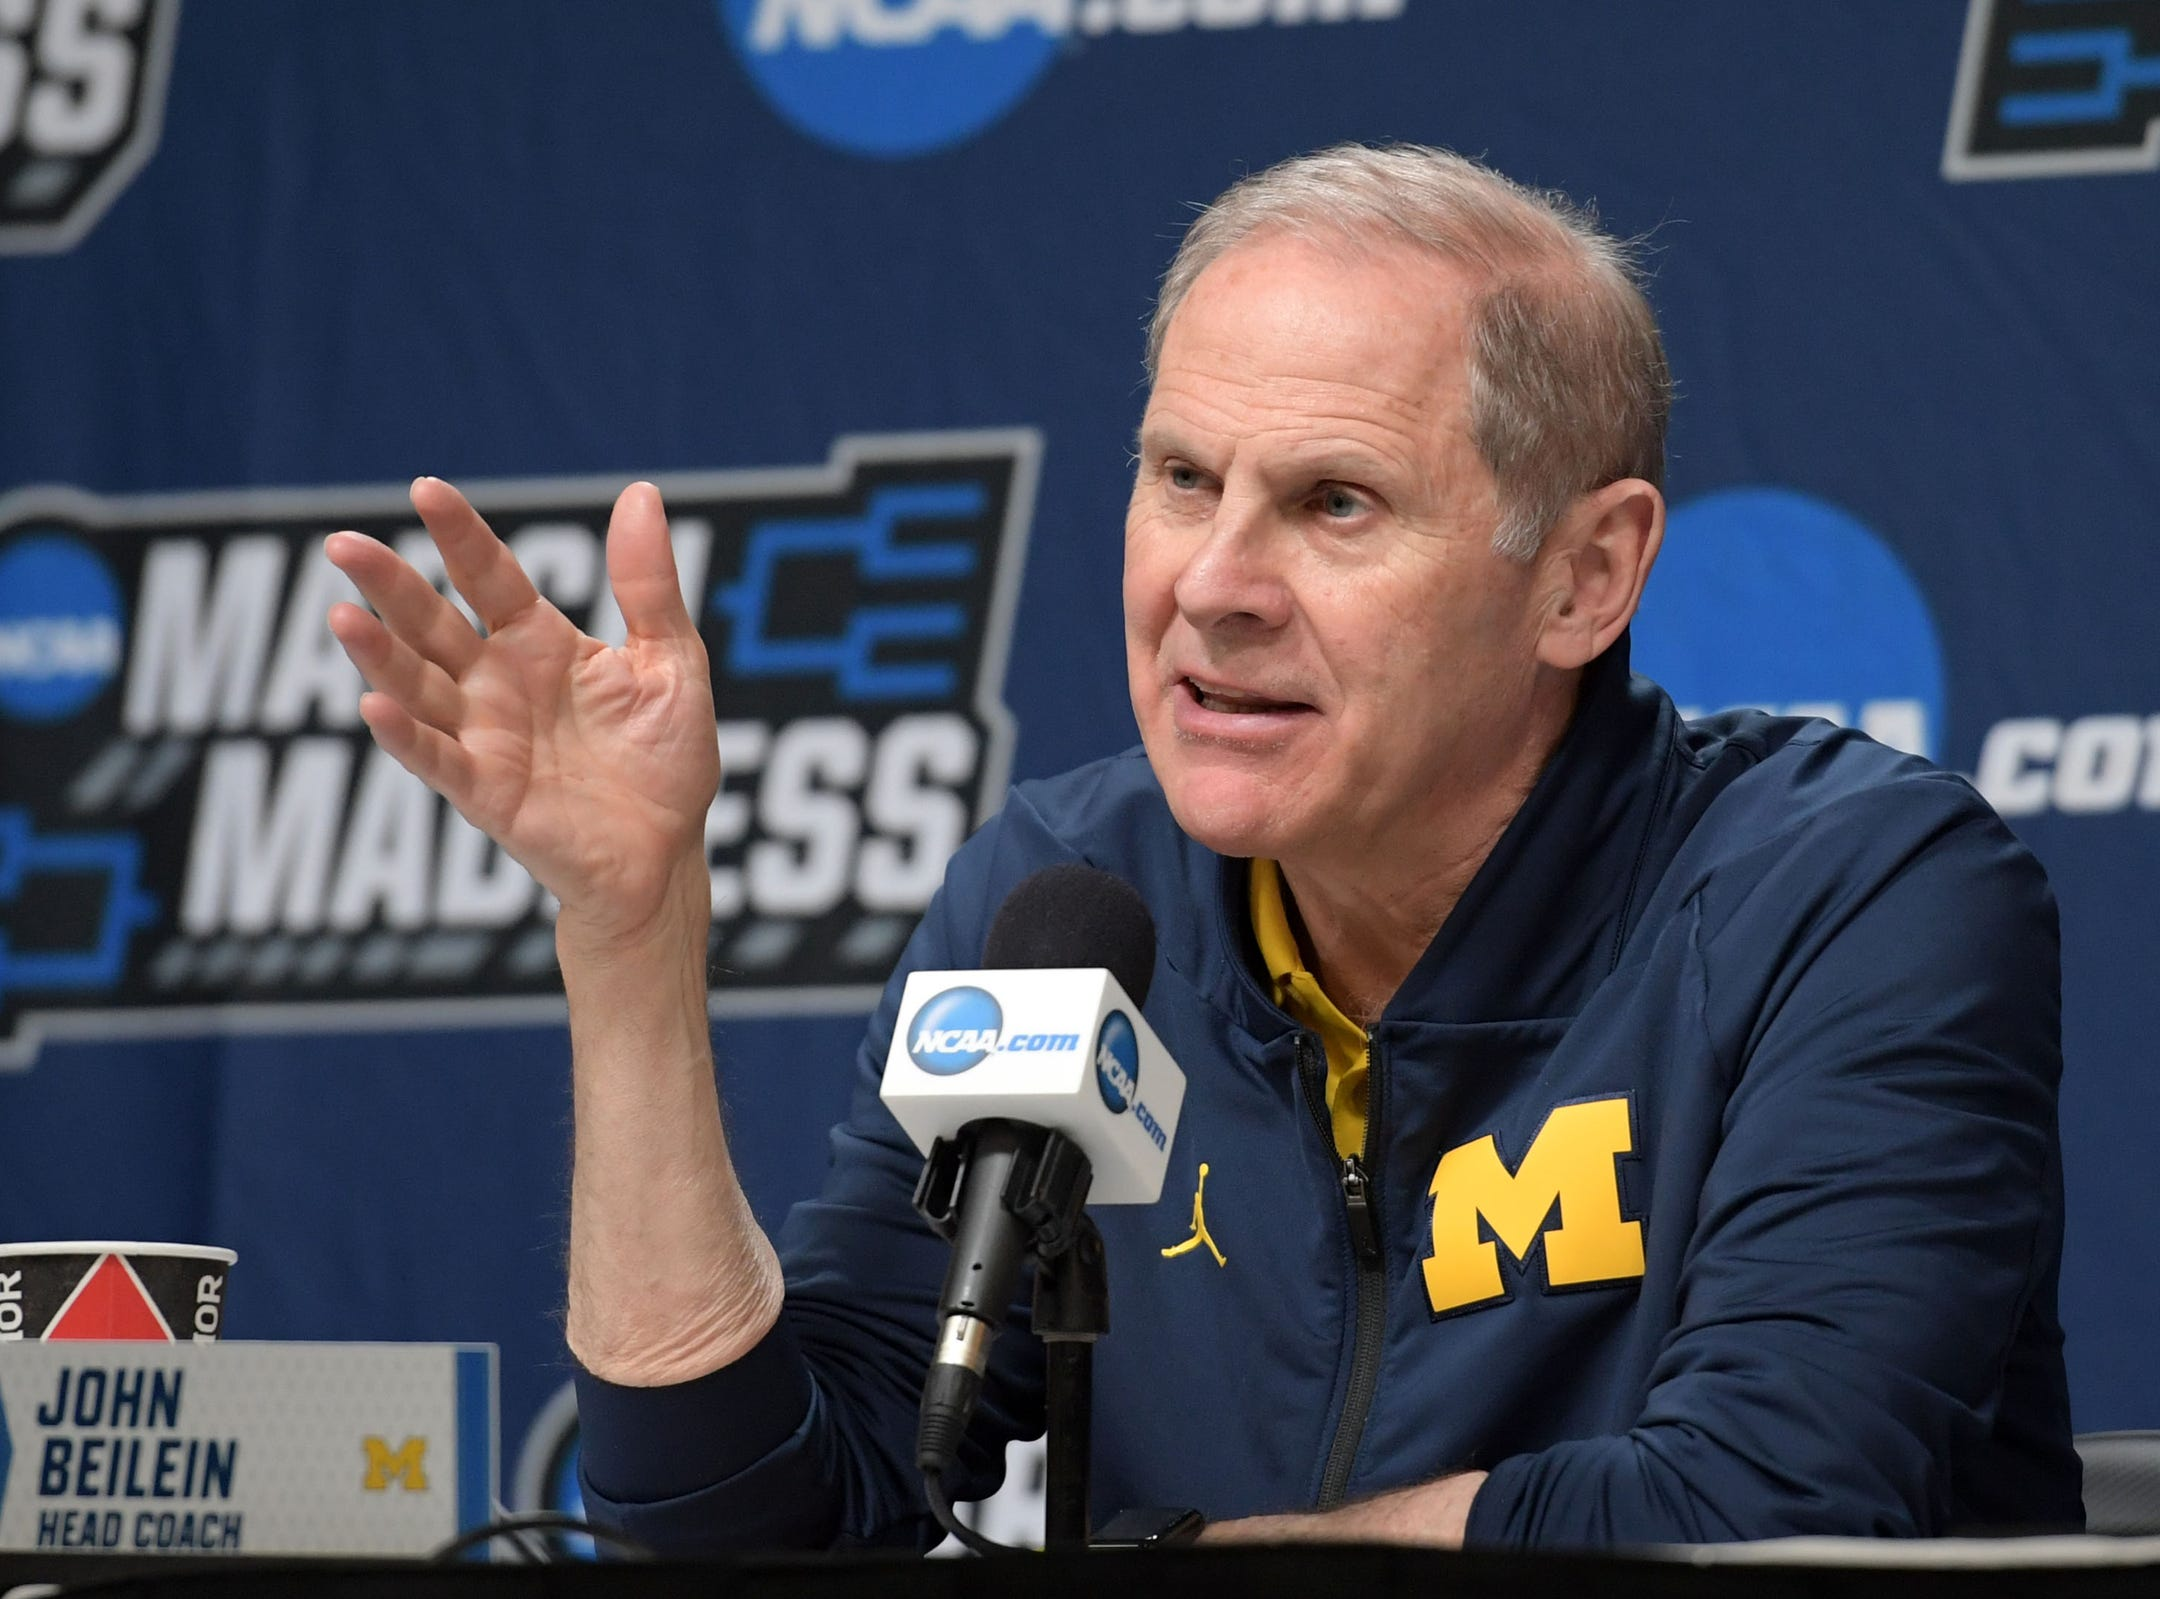 Mar 20, 2019; Des Moines, IA, USA; Michigan Wolverines head coach John Beilein speaks in a press conference during practice before the first round of the 2019 NCAA Tournament at Wells Fargo Arena. Mandatory Credit: Steven Branscombe-USA TODAY Sports